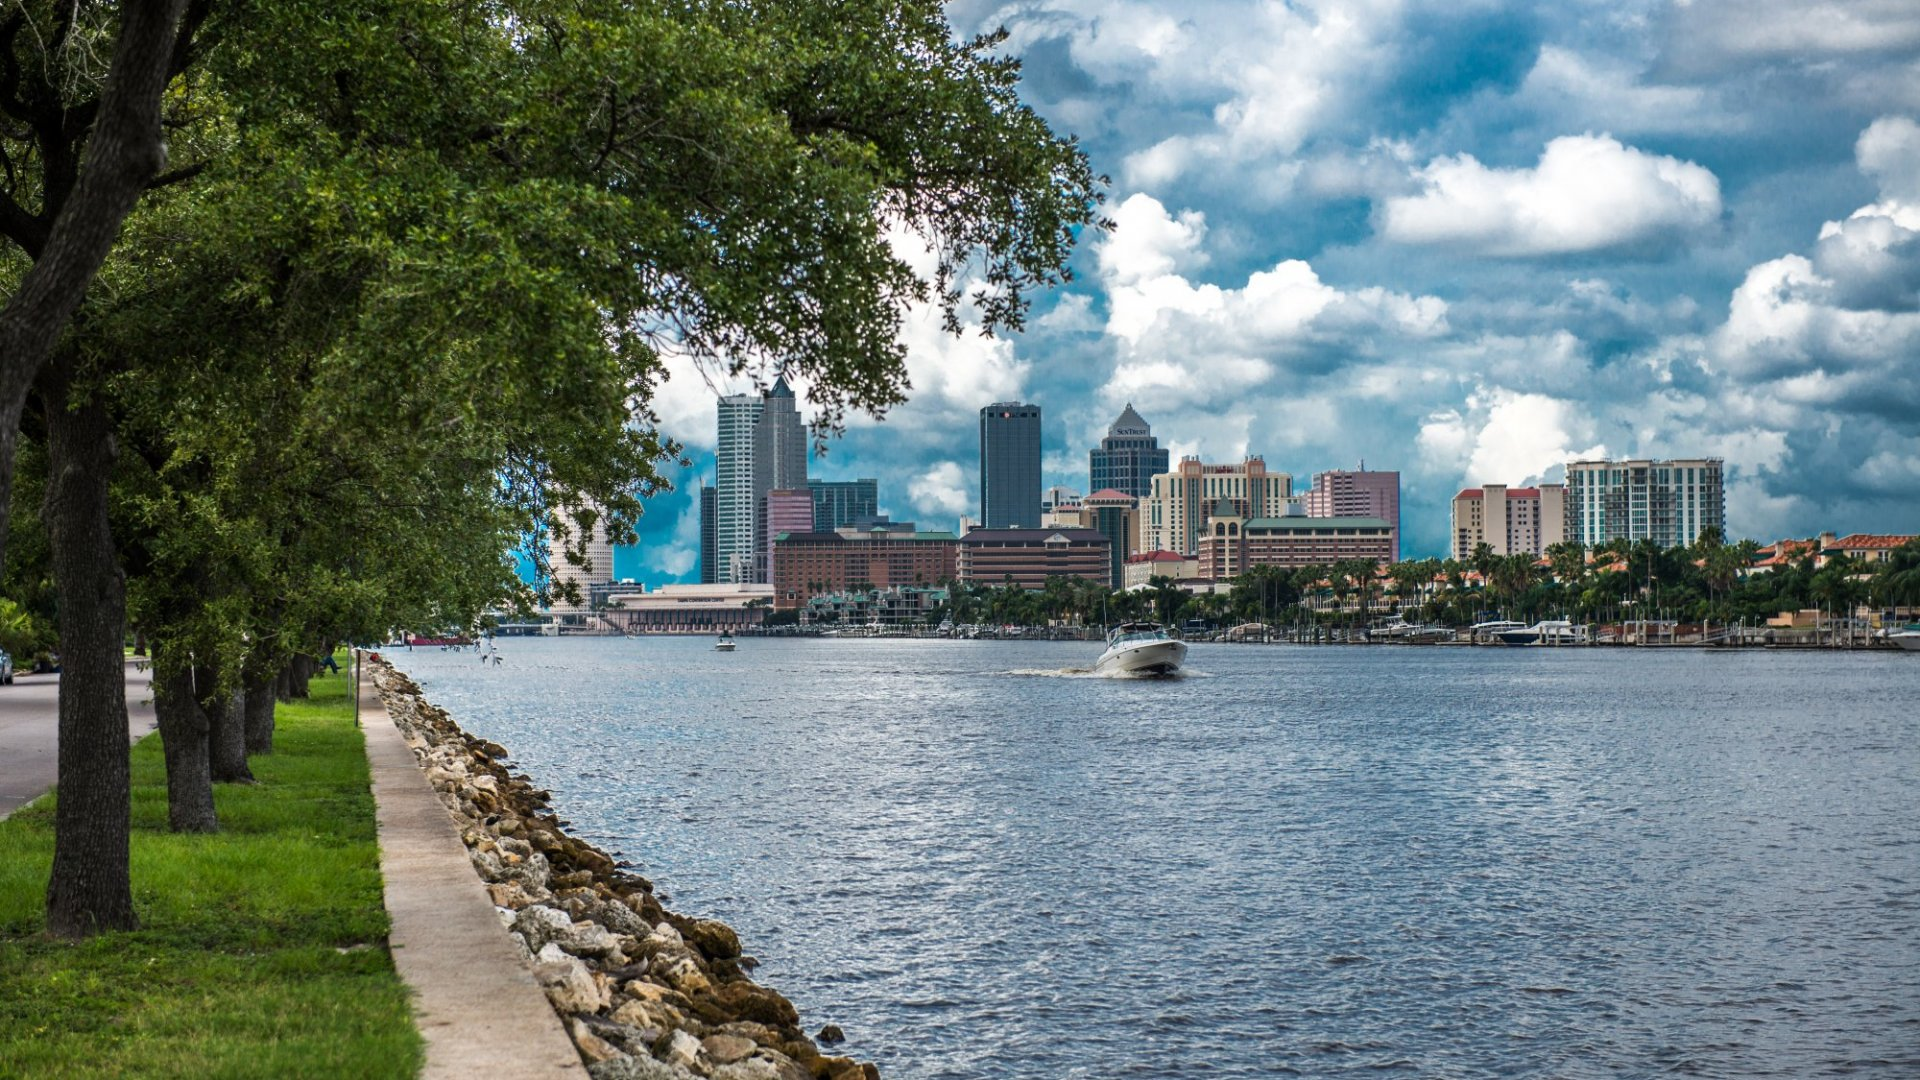 3 Things Entrepreneurs Can Learn From Tampa's Quest to Become a High-Tech City